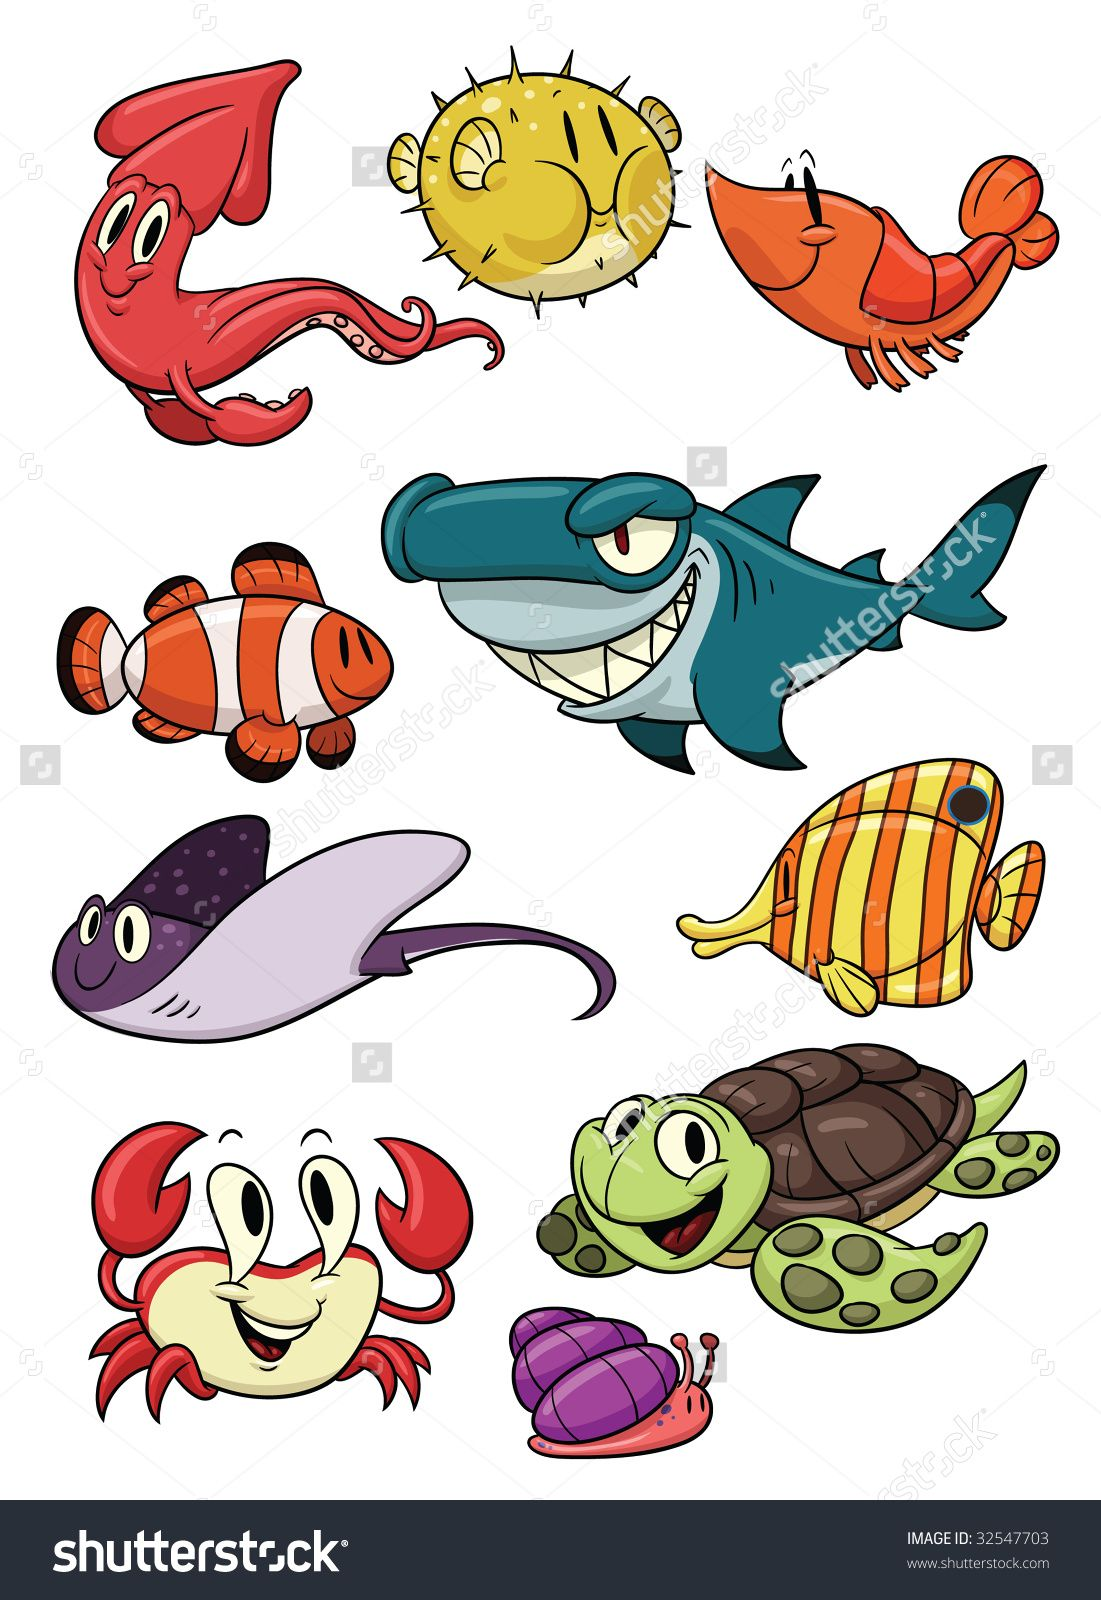 Cute cartoon sea creatures. All in different layers for